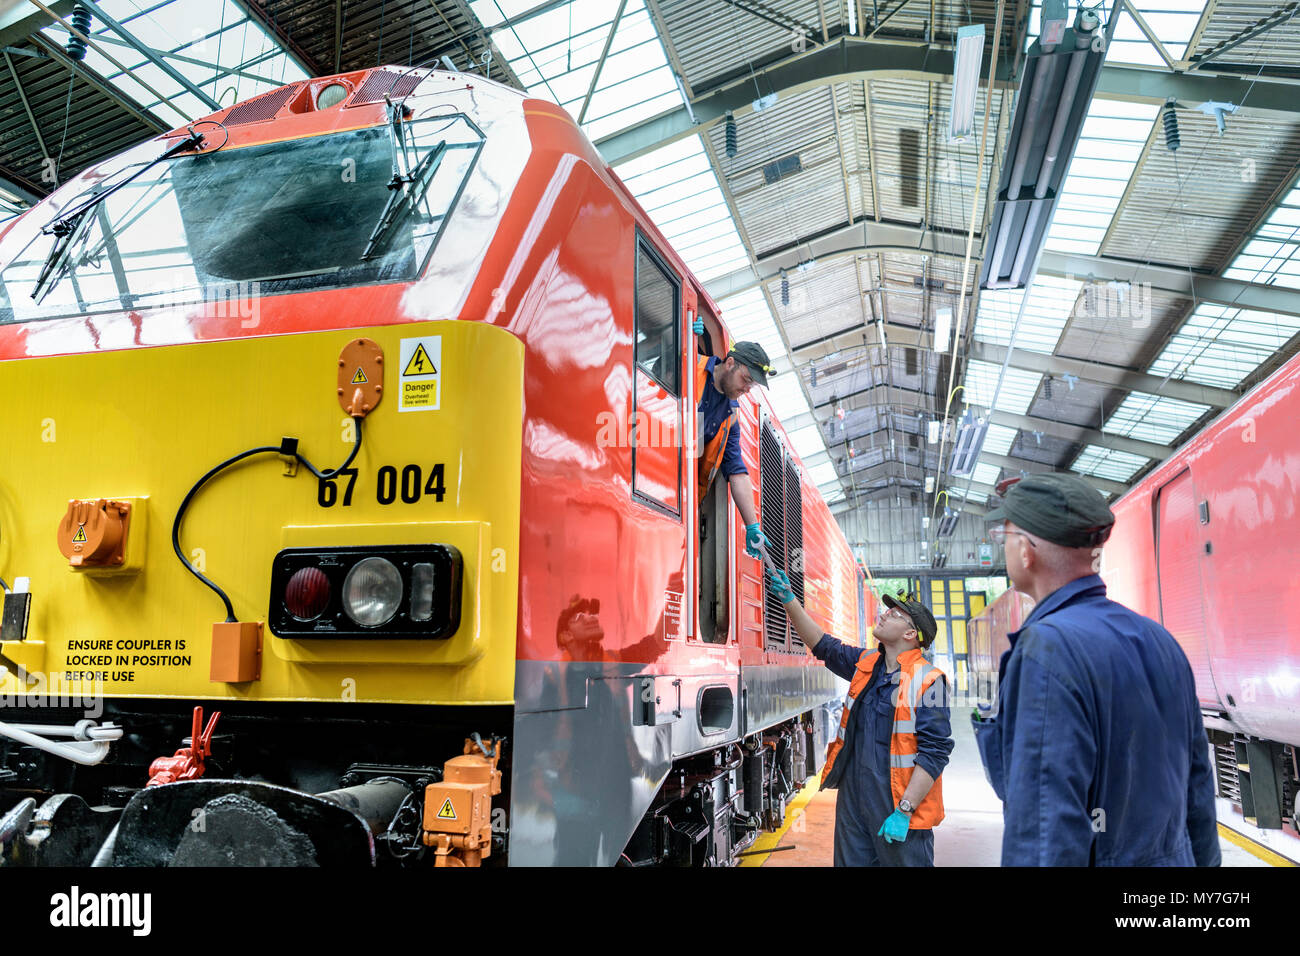 Engineers with refurbished locomotive in train engineering factory - Stock Image